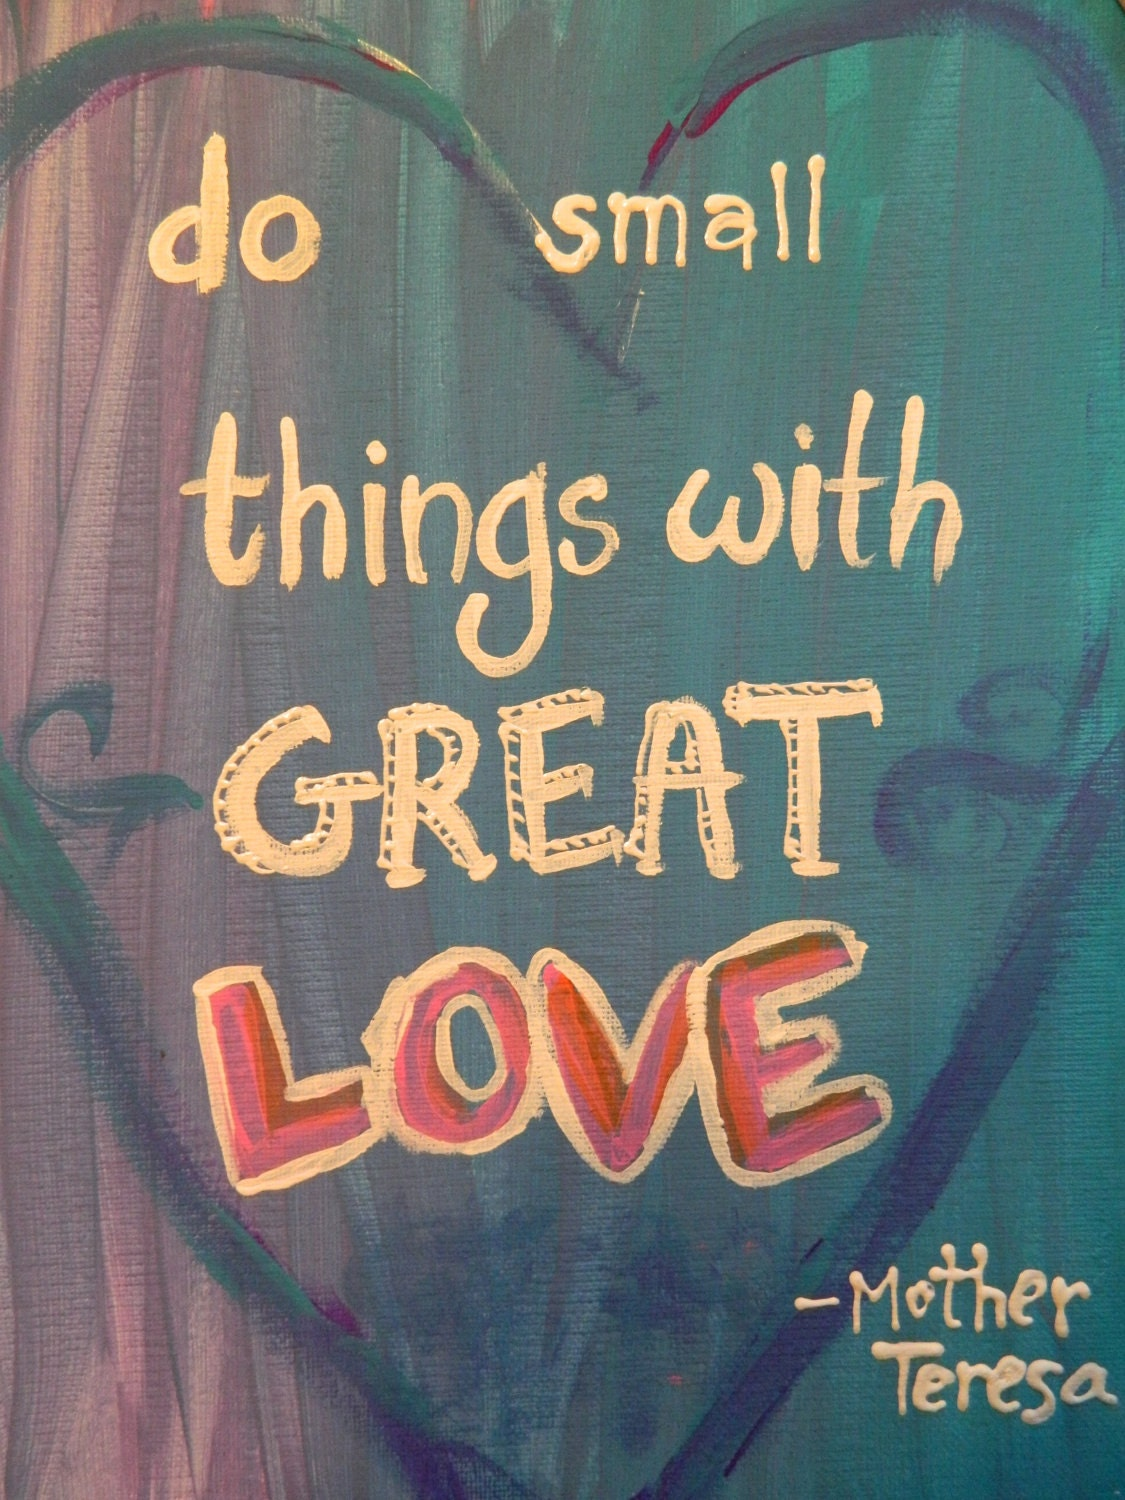 Mother Teresa Quote: Do Small Things With Great Love